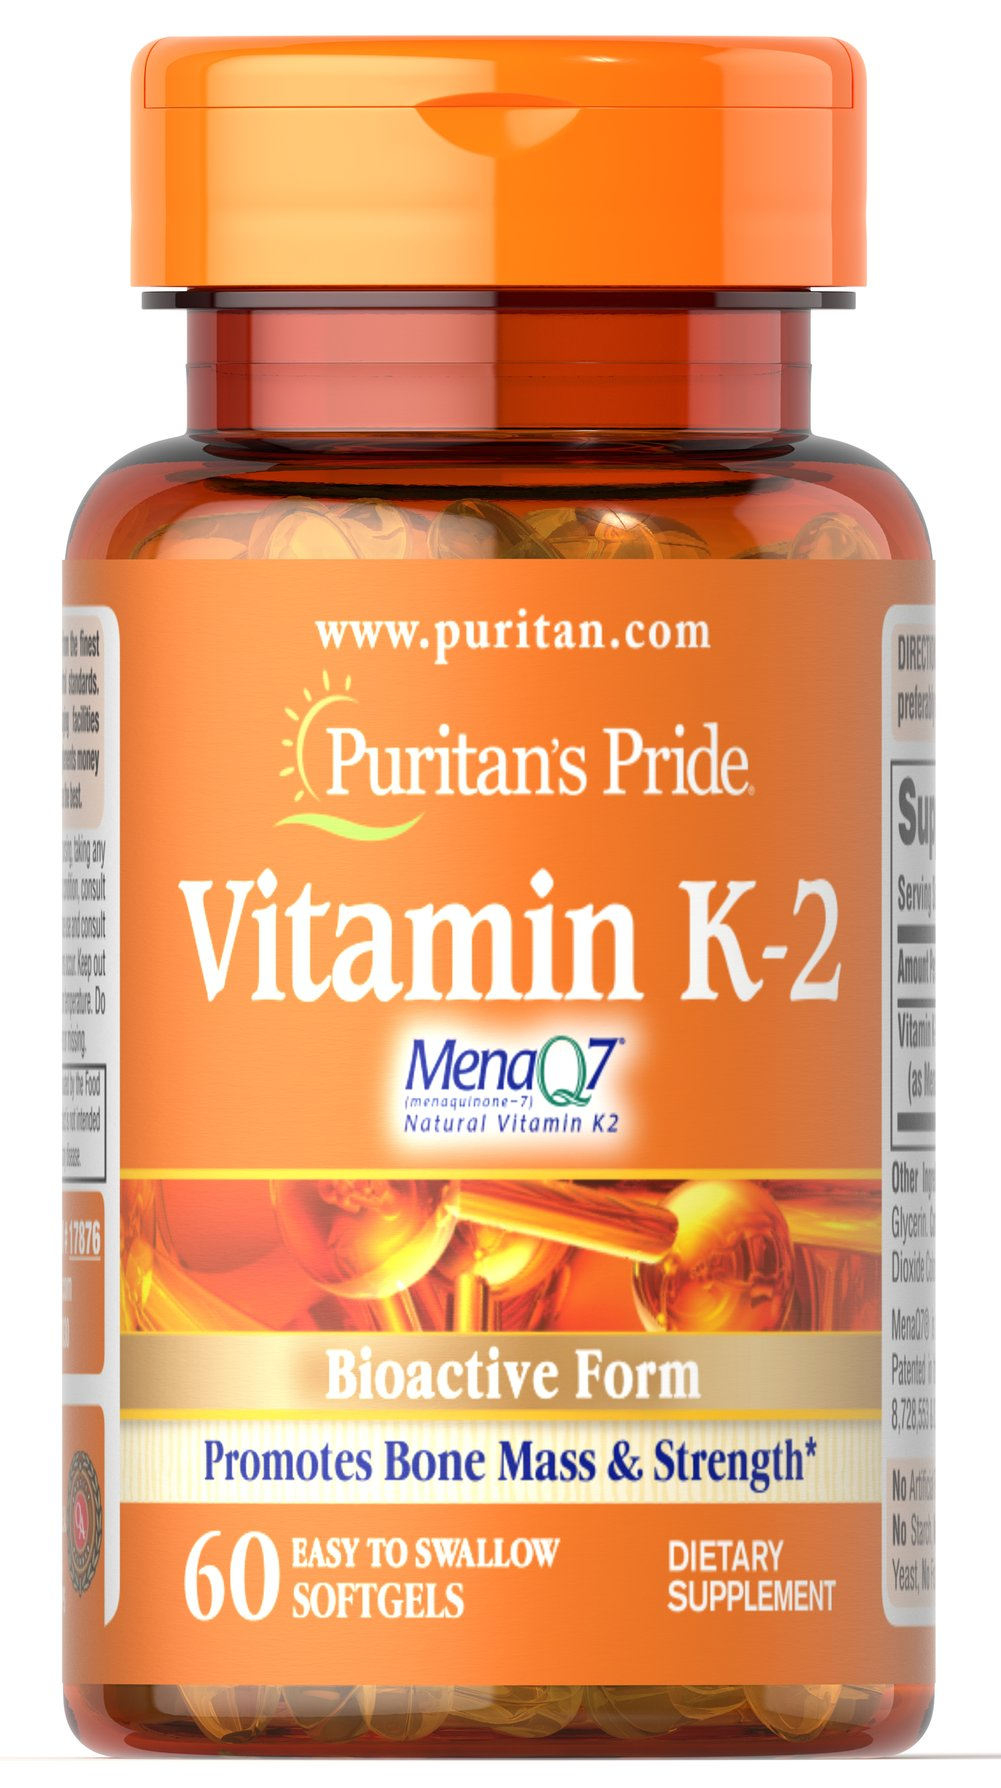 Vitamin K-2 (MenaQ7) 50 mcg  60 Softgels 50 mcg $37.99